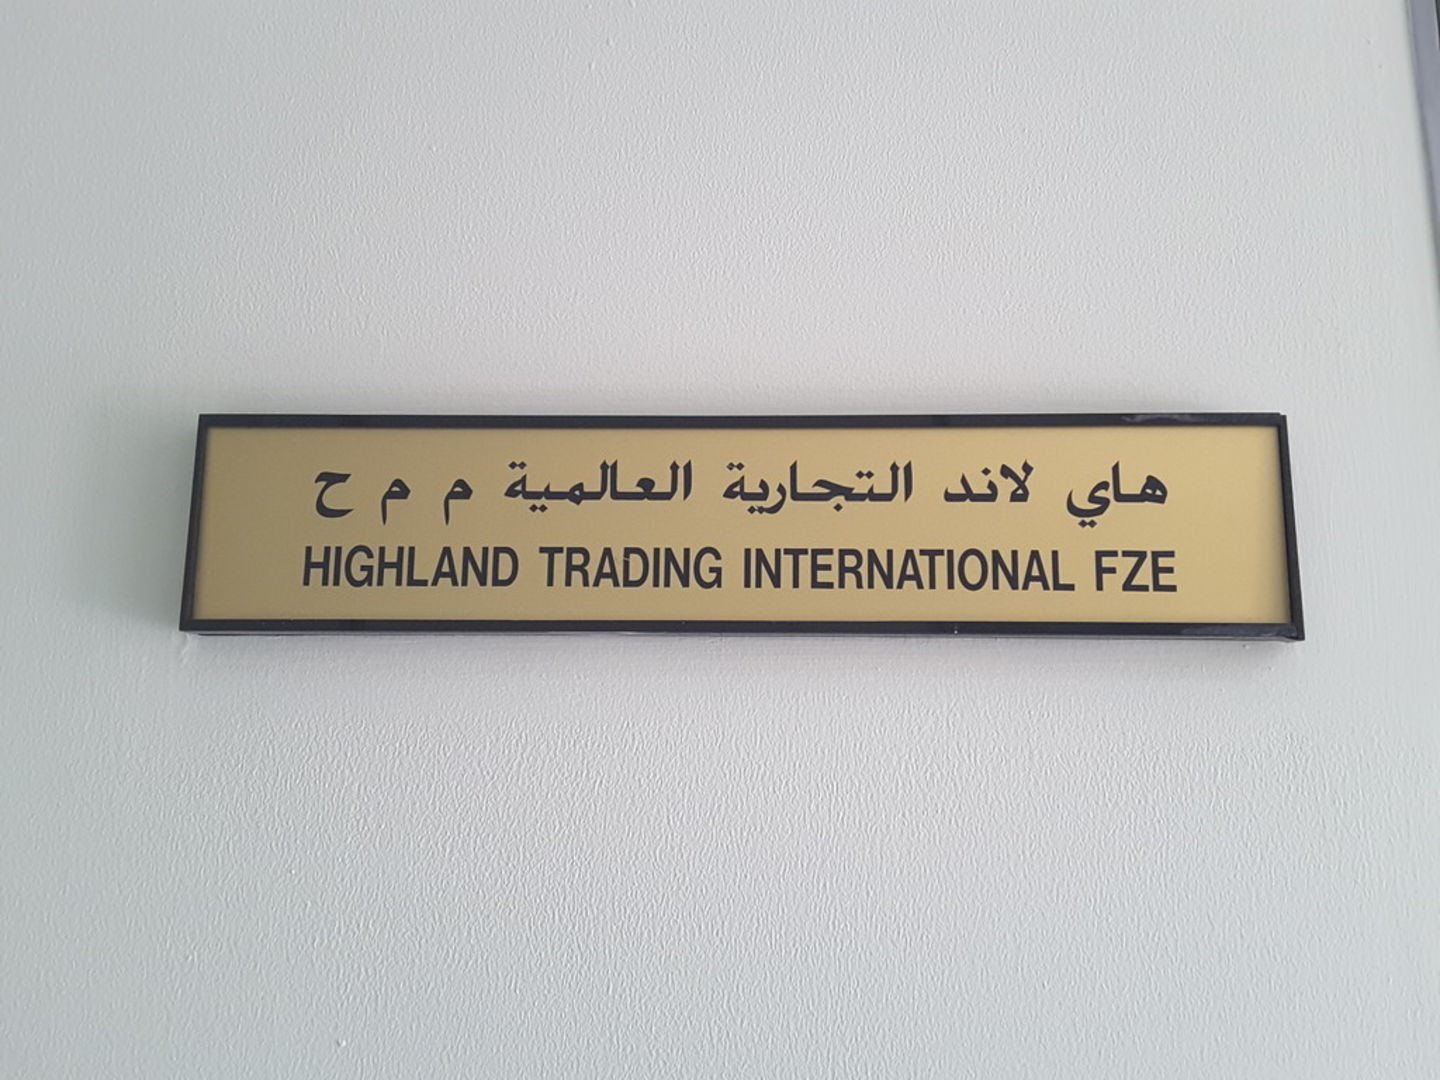 HiDubai-business-highland-trading-international-fze-b2b-services-food-stuff-trading-jebel-ali-free-zone-mena-jebel-ali-dubai-2